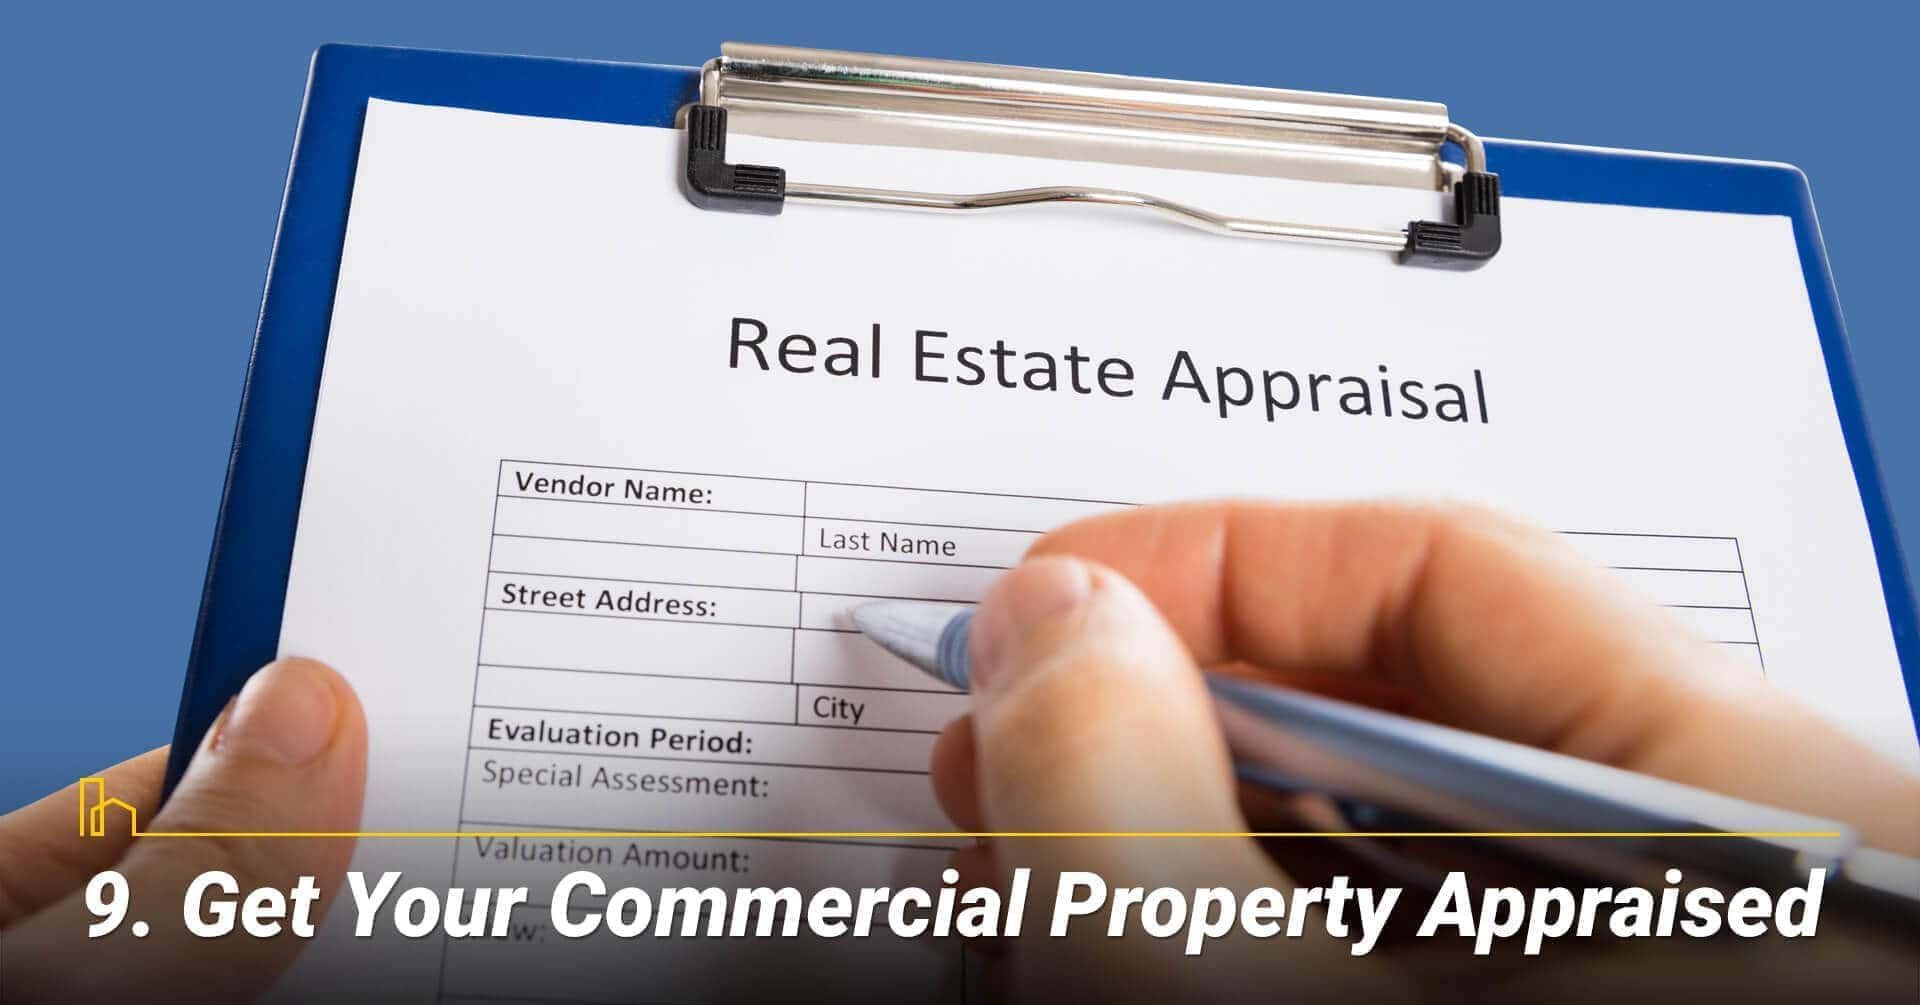 Get Your Commercial Property Appraised, appraise your commercial property